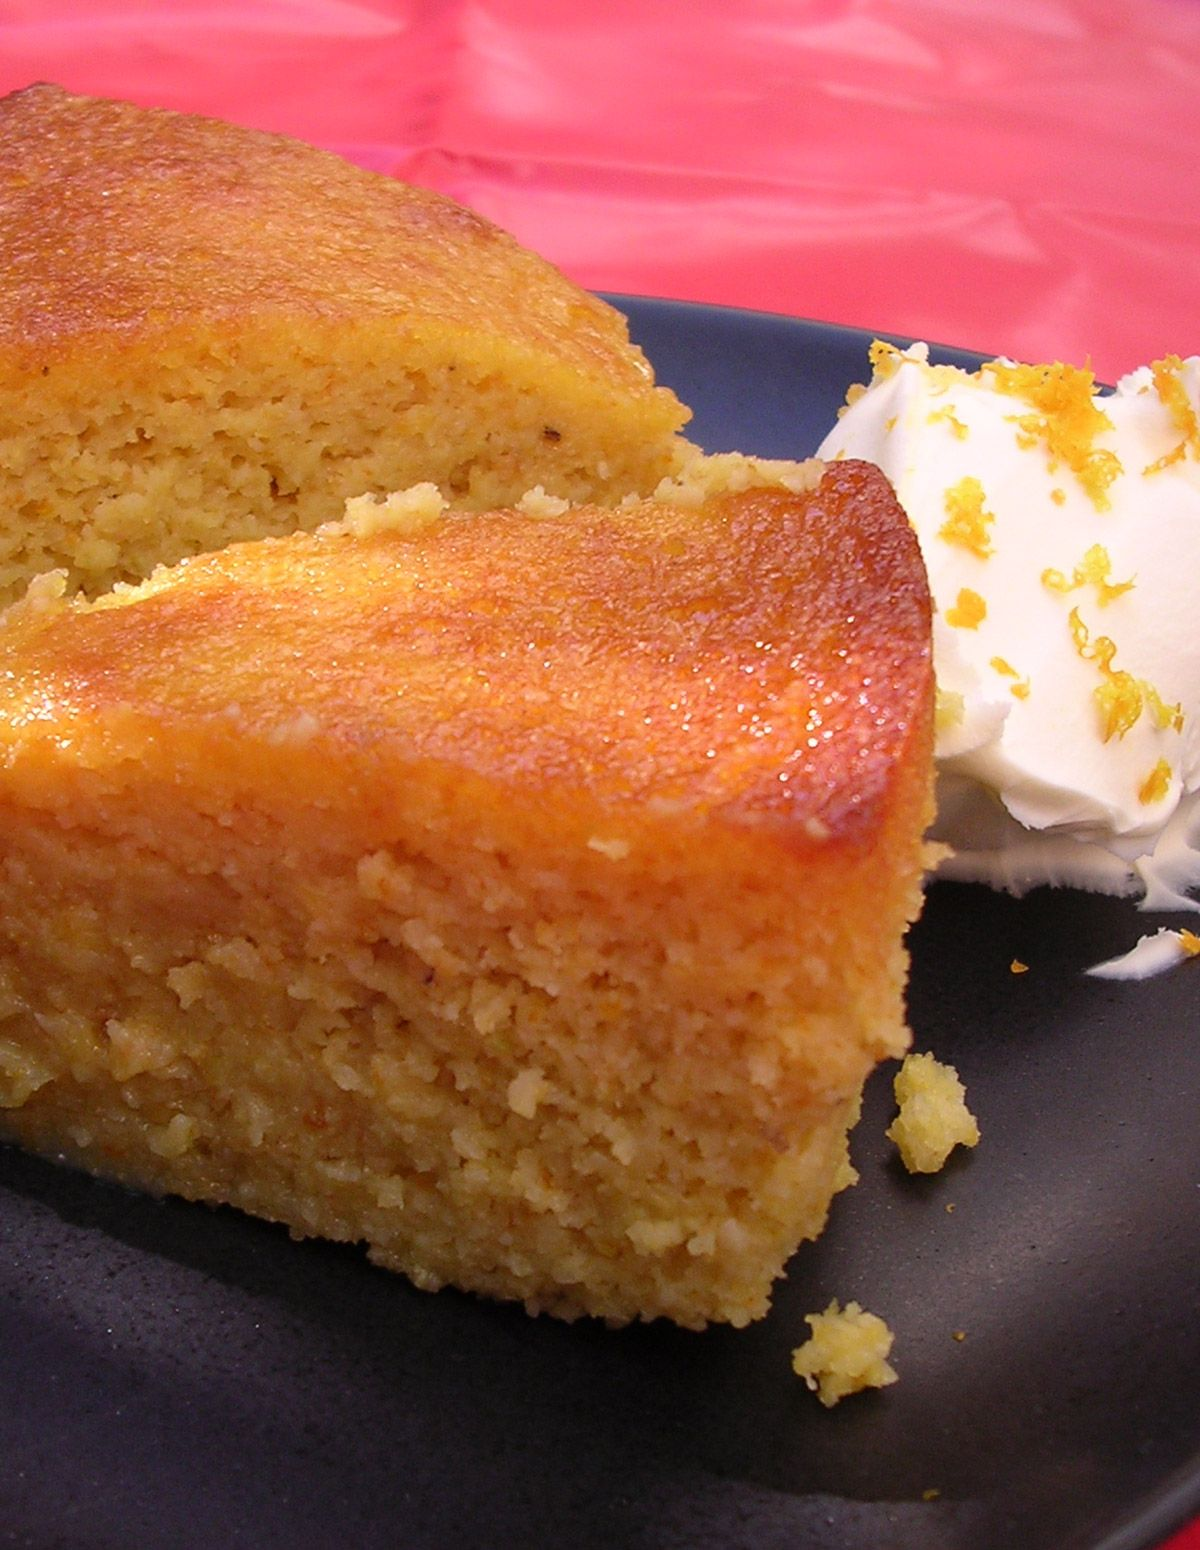 Clementine Cake Recipe Clementine Cake Flourless Cake And Almonds